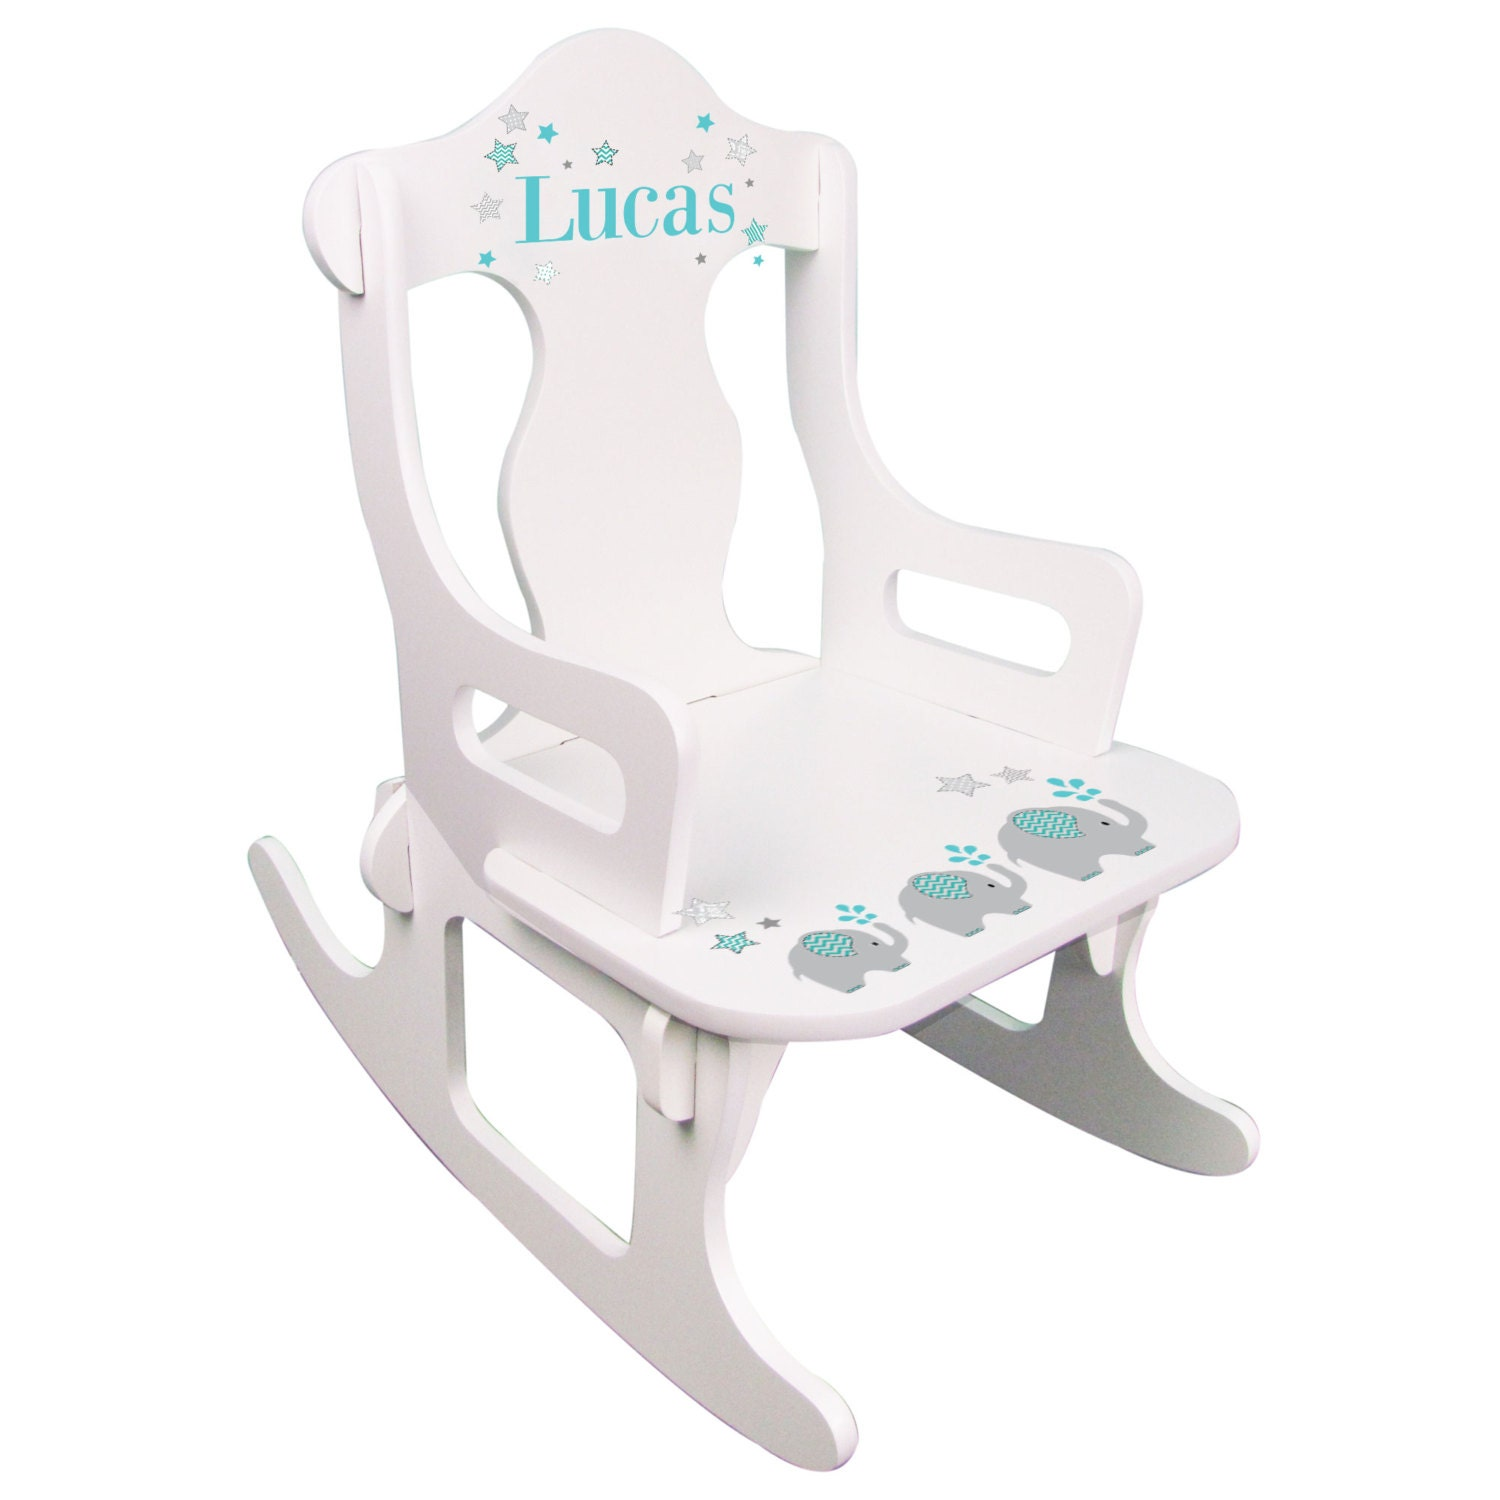 Personalized Elephant White Puzzle Rocking Chair With Child S Name On Kid S Rocker Toddler Baby Gift Elephant Nursery Elephants Puzz 303